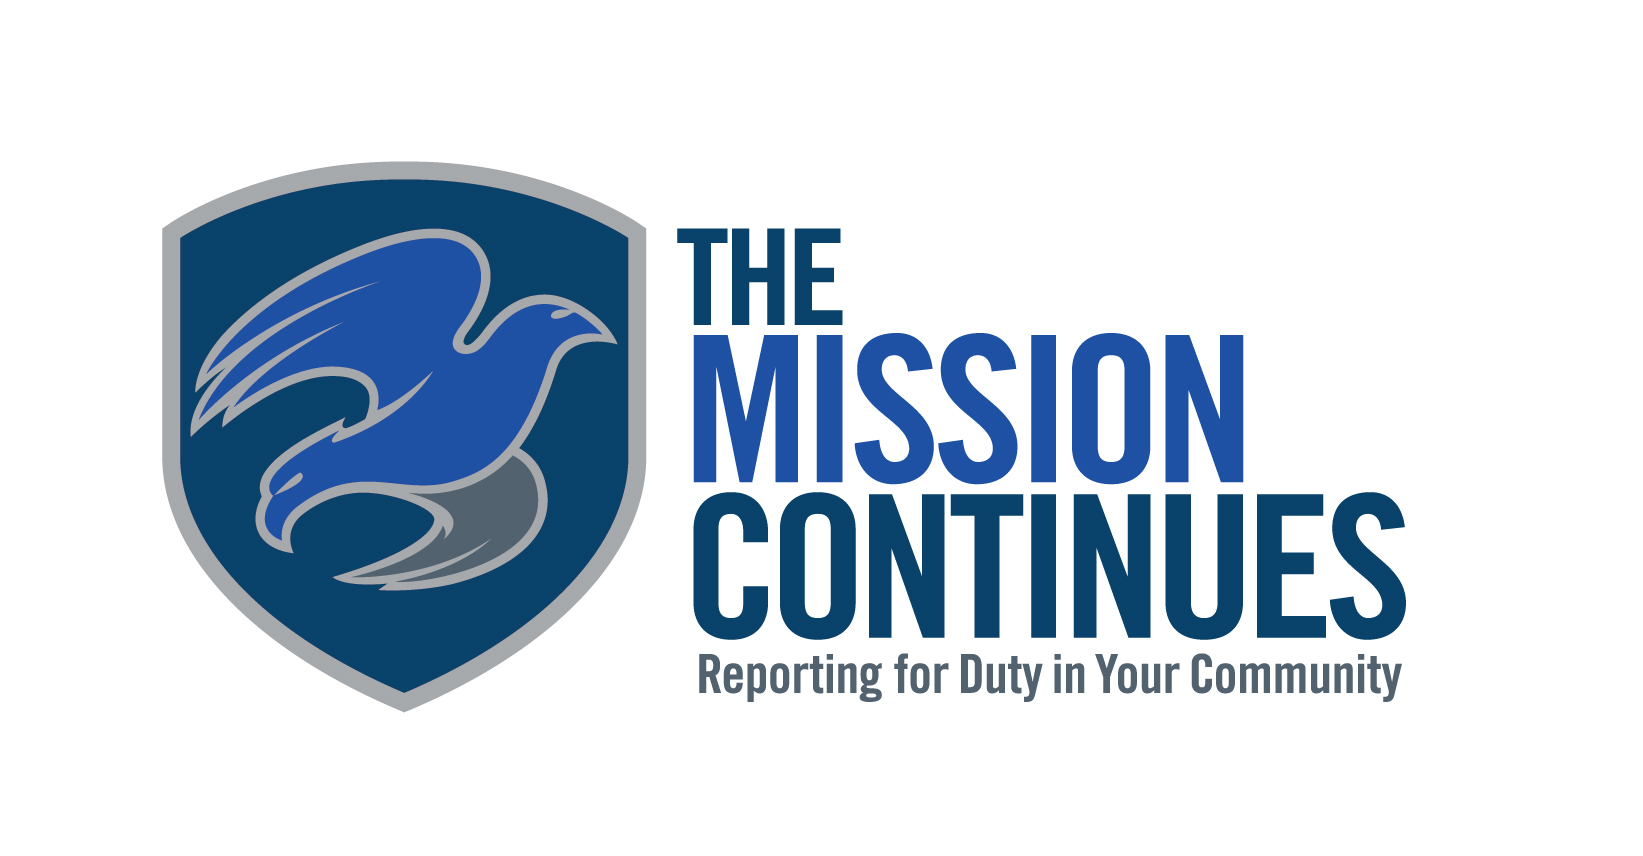 The Mission Continues - The Mission Continues Fellowship involves 20 hours of service per week for 26 weeks at a local nonprofit organization. Fellows are encouraged to choose a nonprofit organization to serve based on their own personal passions. Current and Alumni Fellows have worked at organizations addressing issues ranging from disaster preparedness to education for low-income youth to training service dogs for wounded veterans. These host organizations include Habitat for Humanity, American Red Cross, Big Brothers Big Sisters, Mothers Against Drunk Driving, and many more.The Mission Continues Service Platoonsare a team of veterans, active duty service members, guardsmen and reservists that mobilizes together to solve a specific challenge in their community.